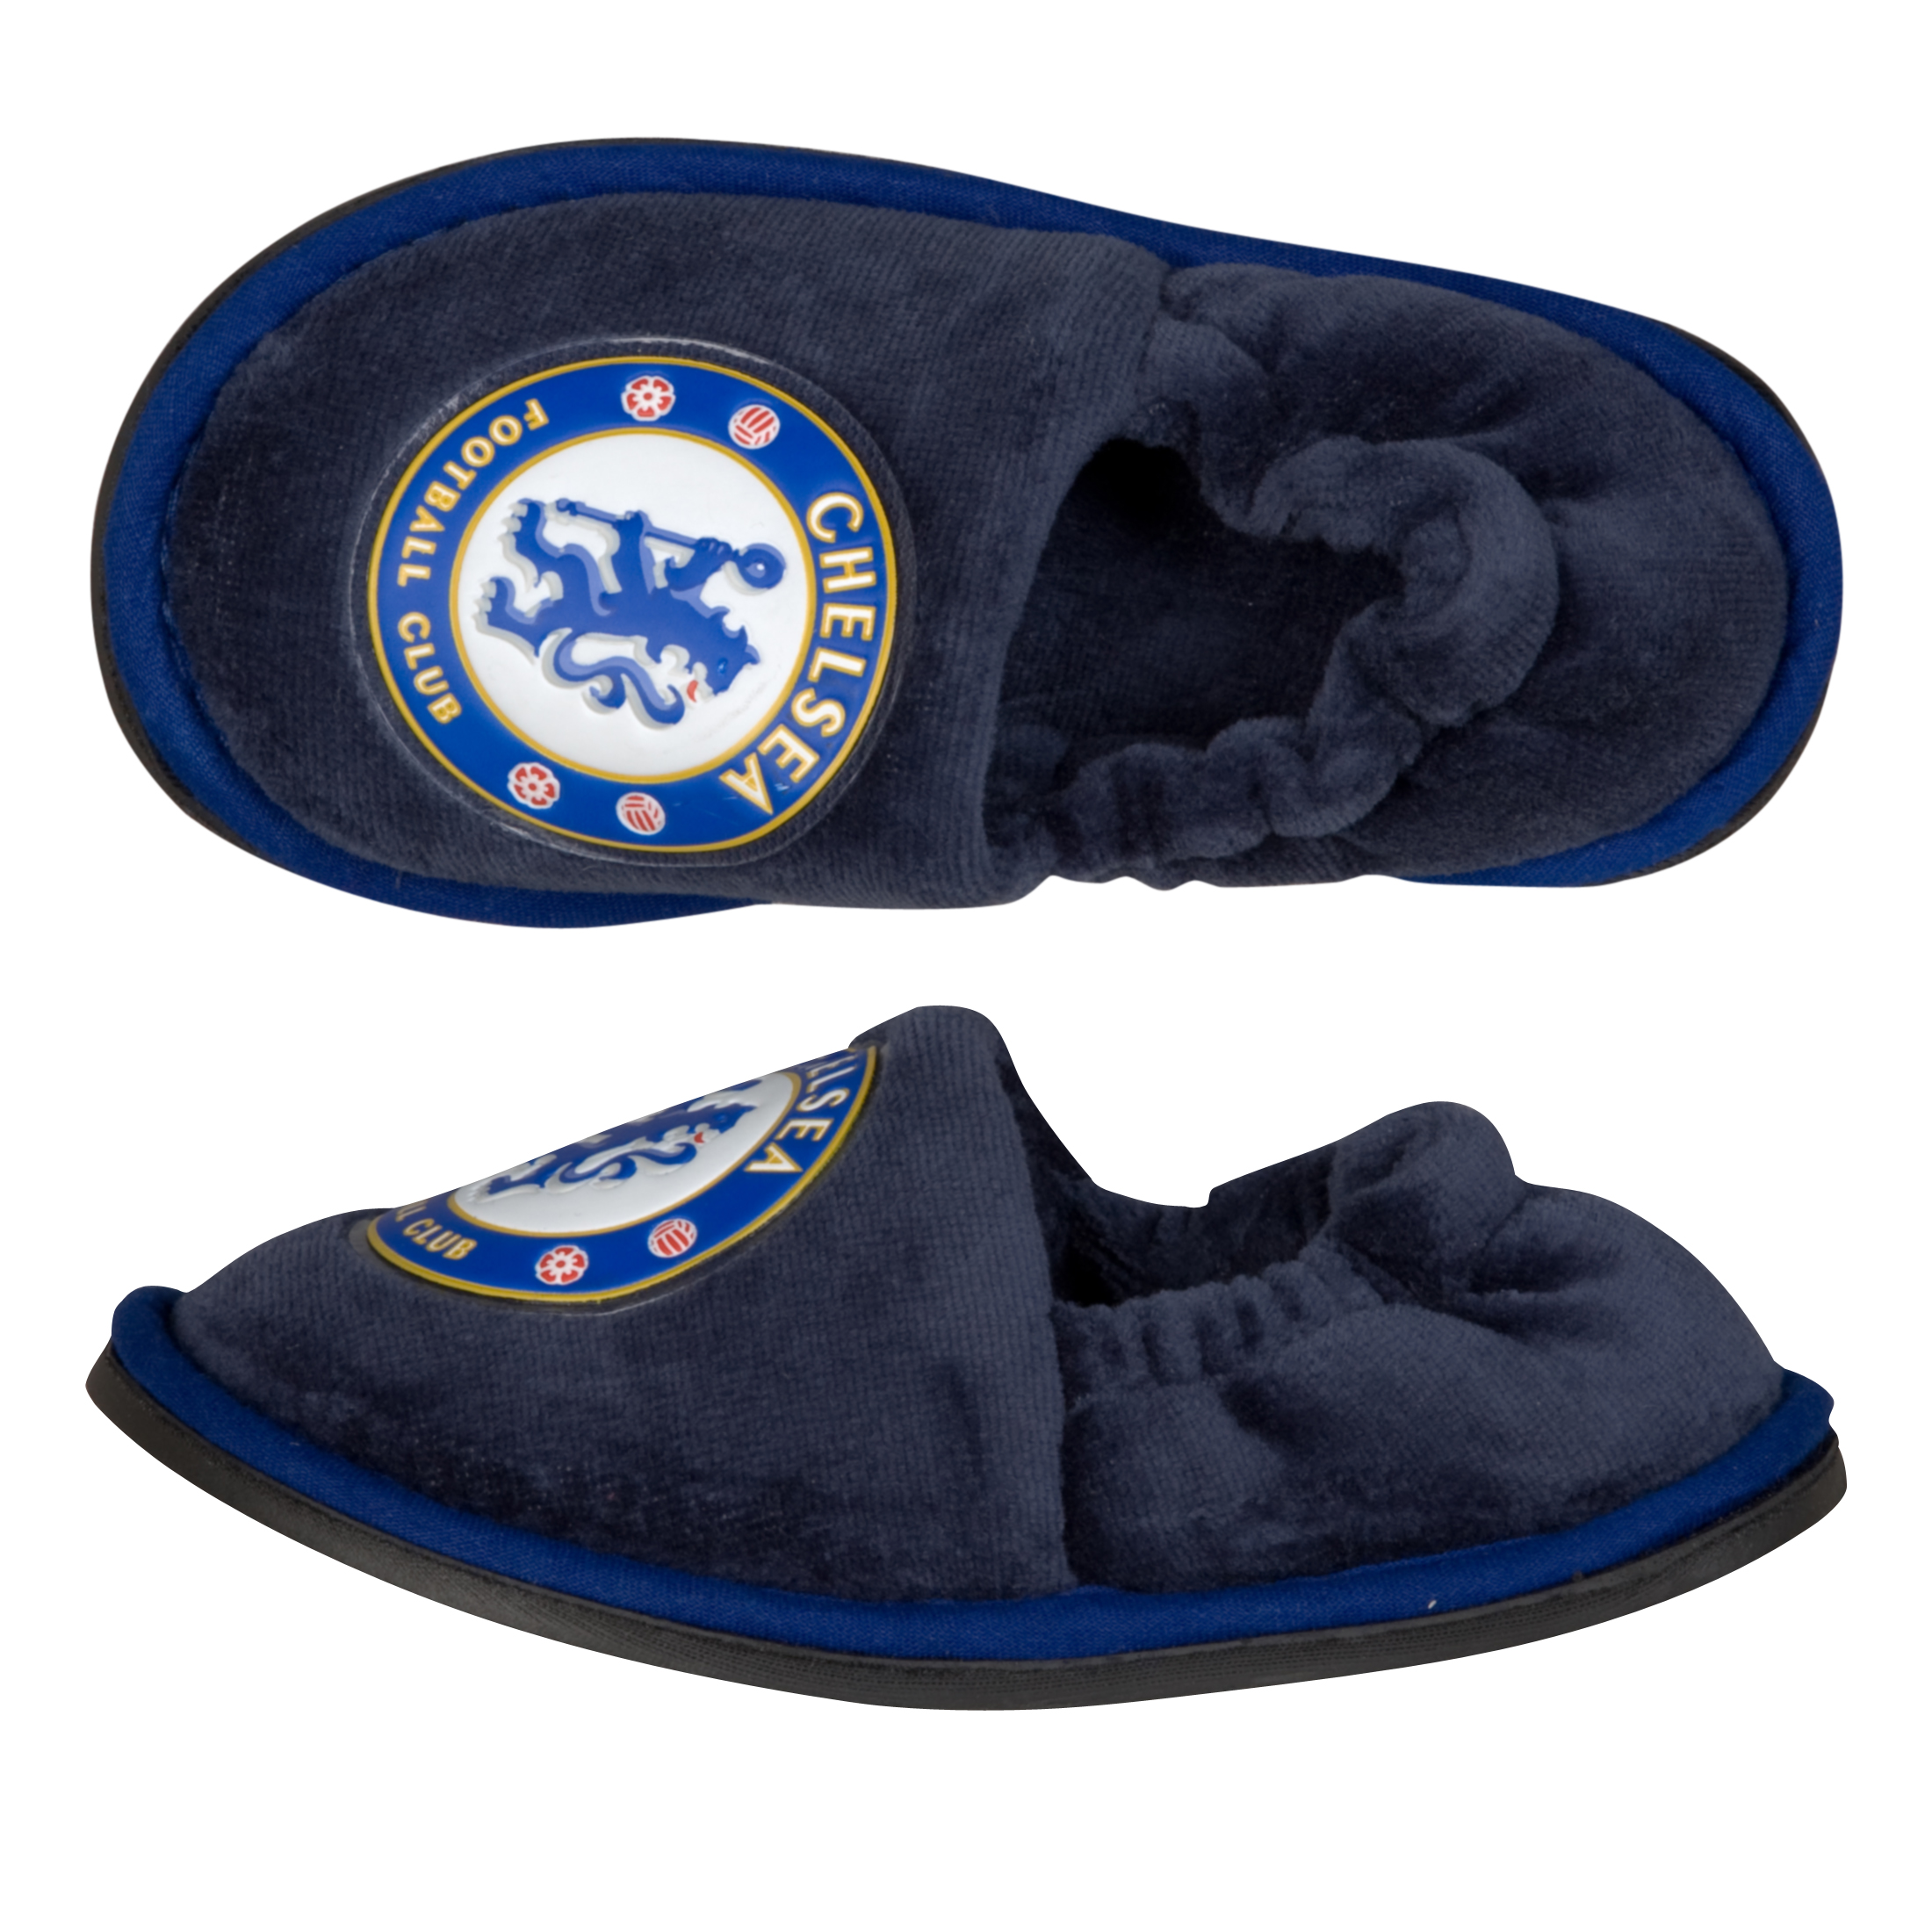 Chelsea Stretch Heel Slipper - Infant Boys